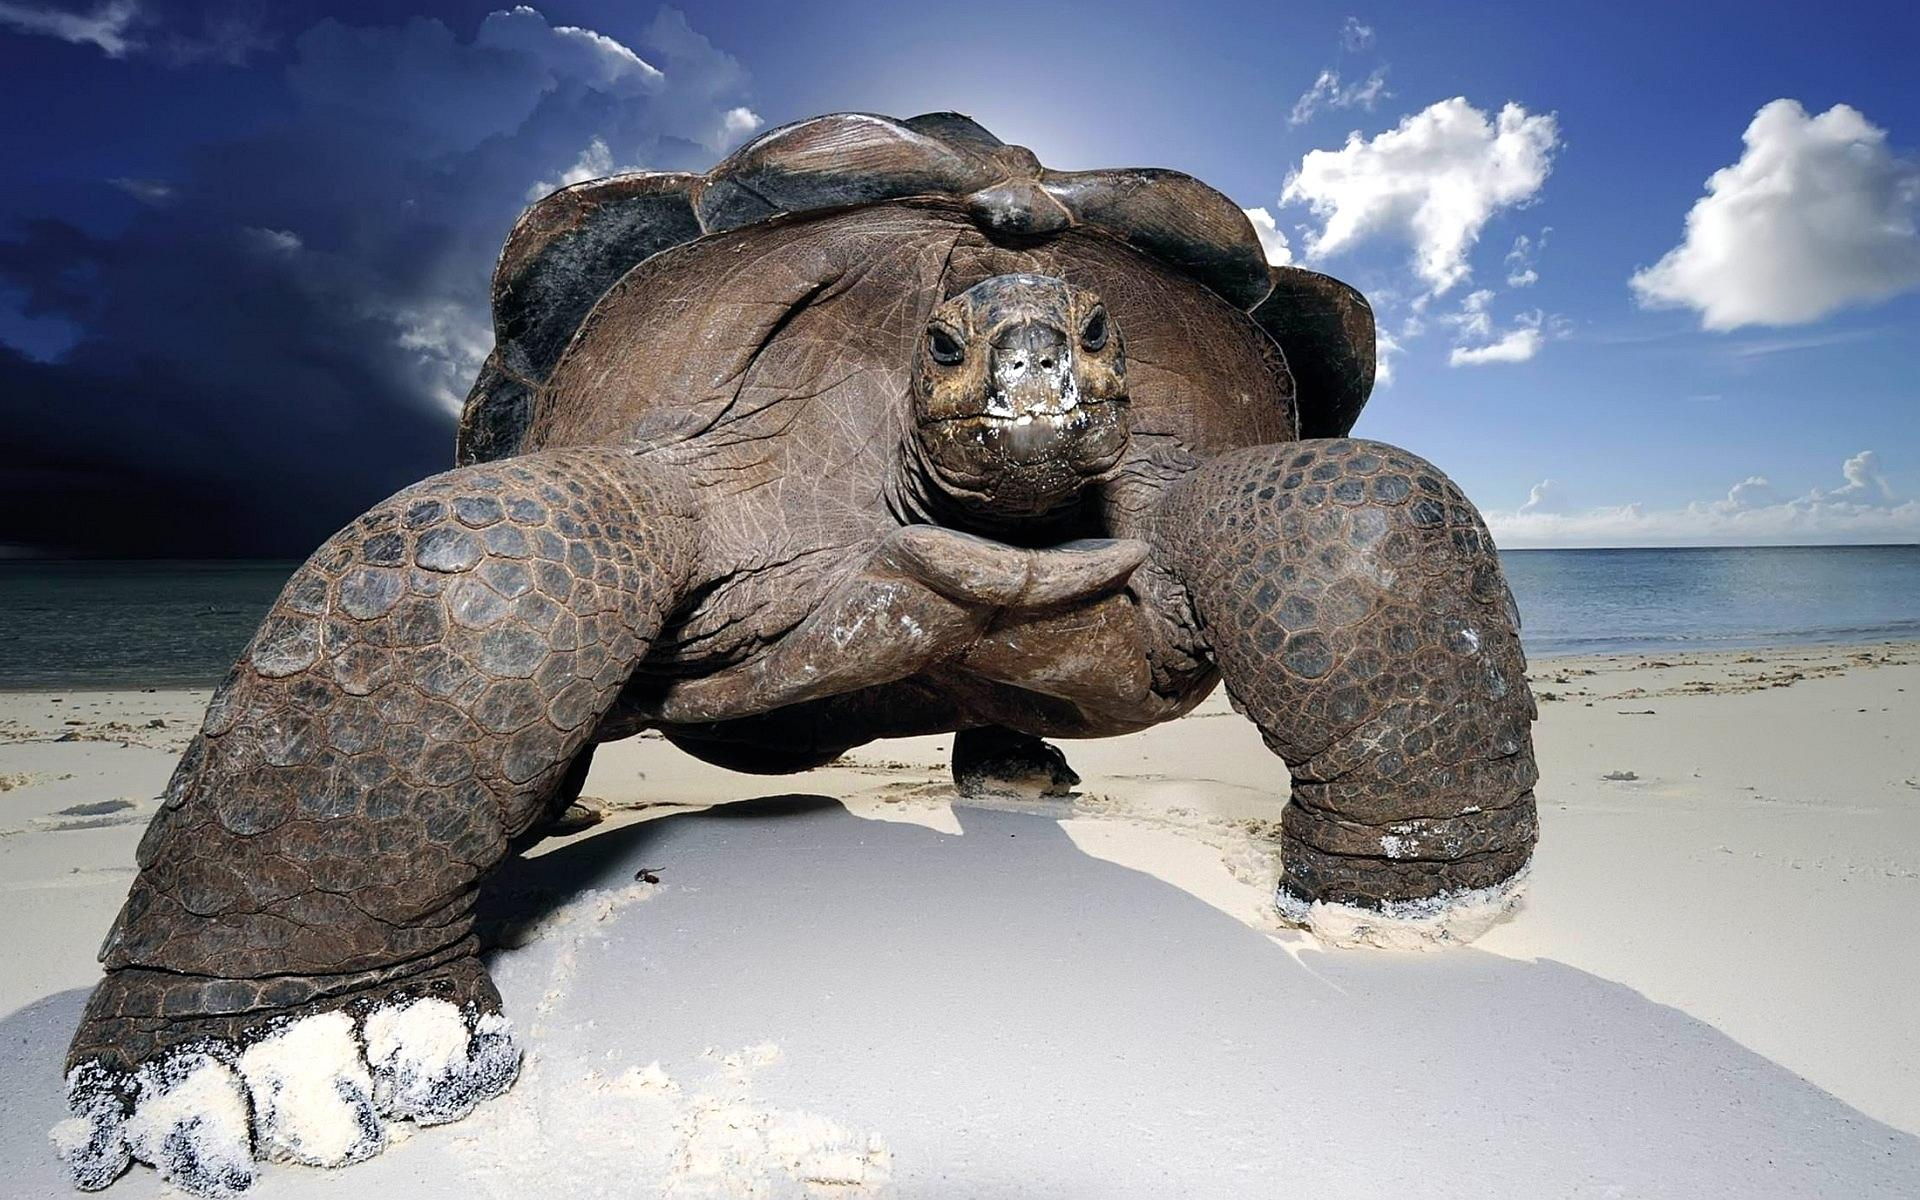 wallpaper-galapagos-giant-tortoise